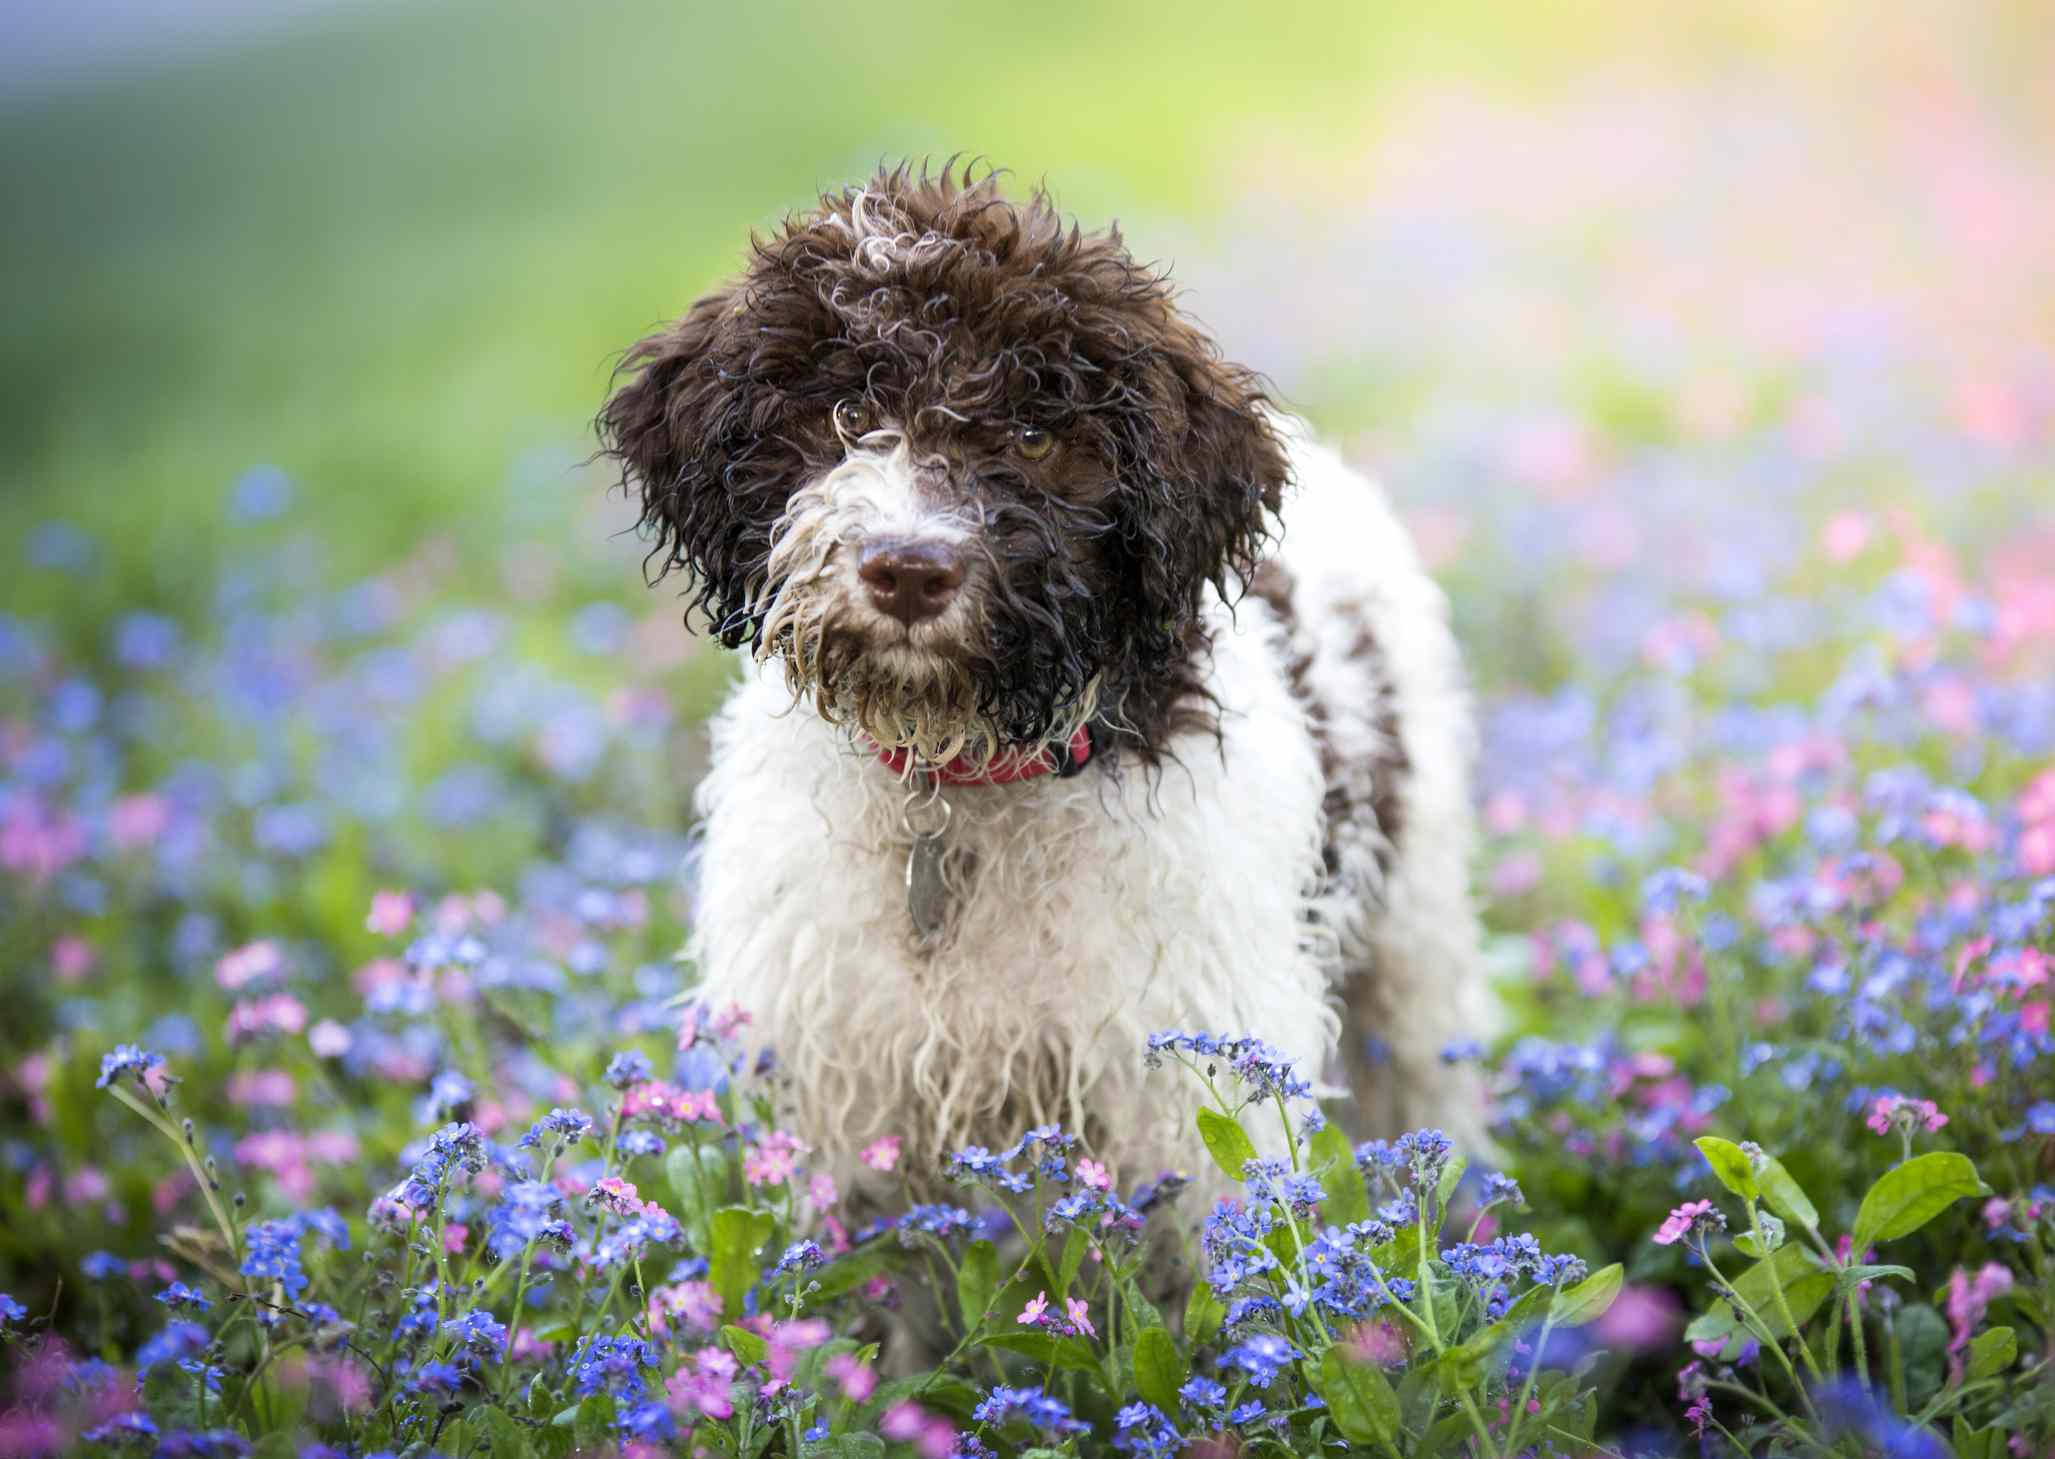 Lagotto Romagnolo dog in a flower field.